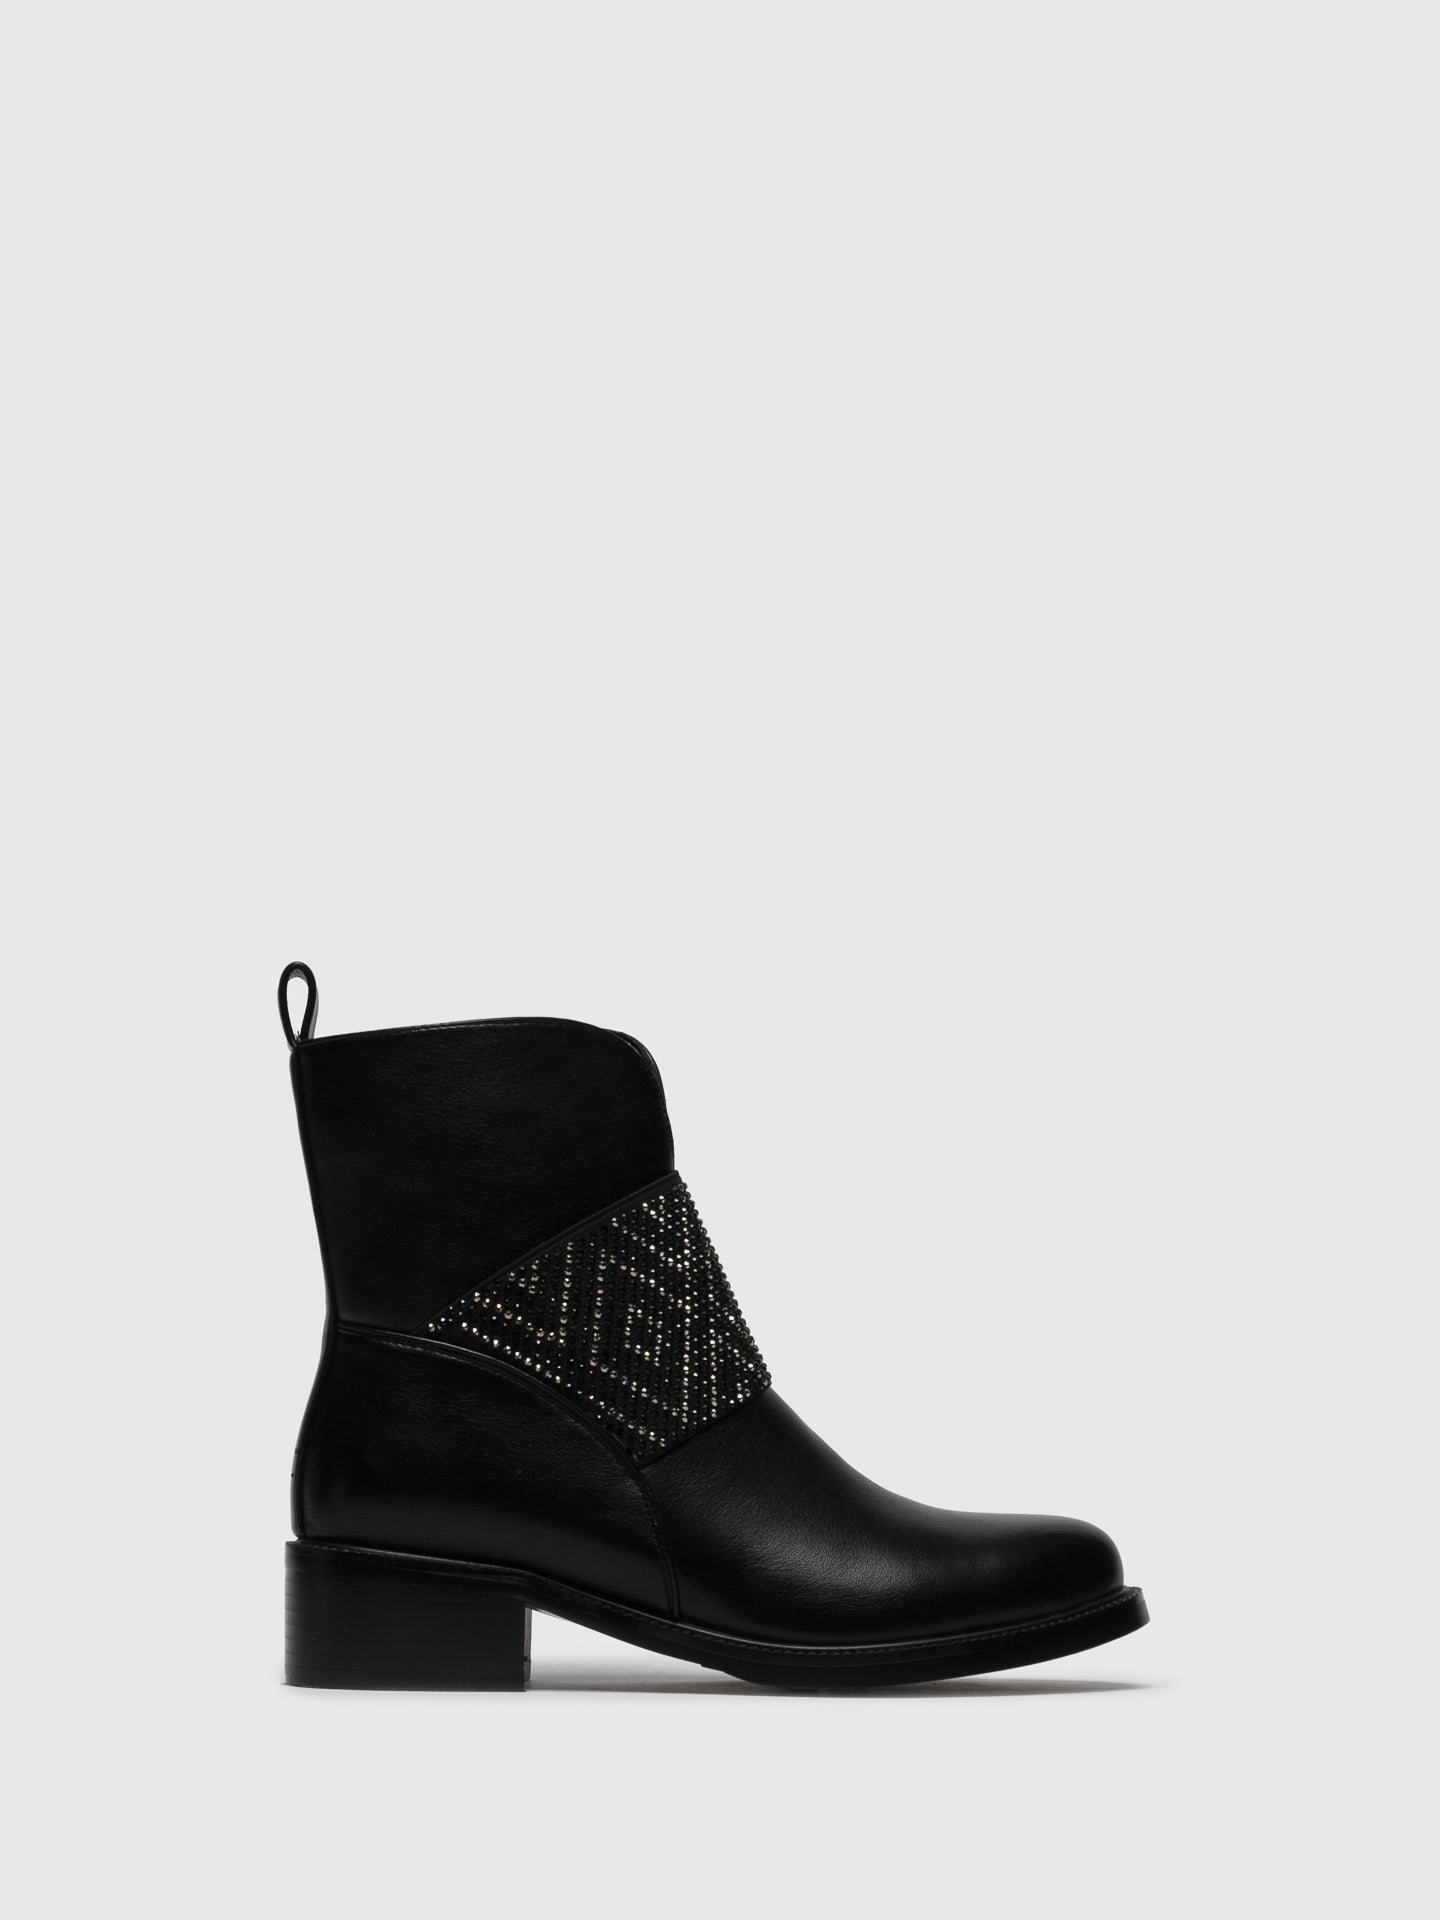 Parodi Sunshine Black Zip Up Ankle Boots